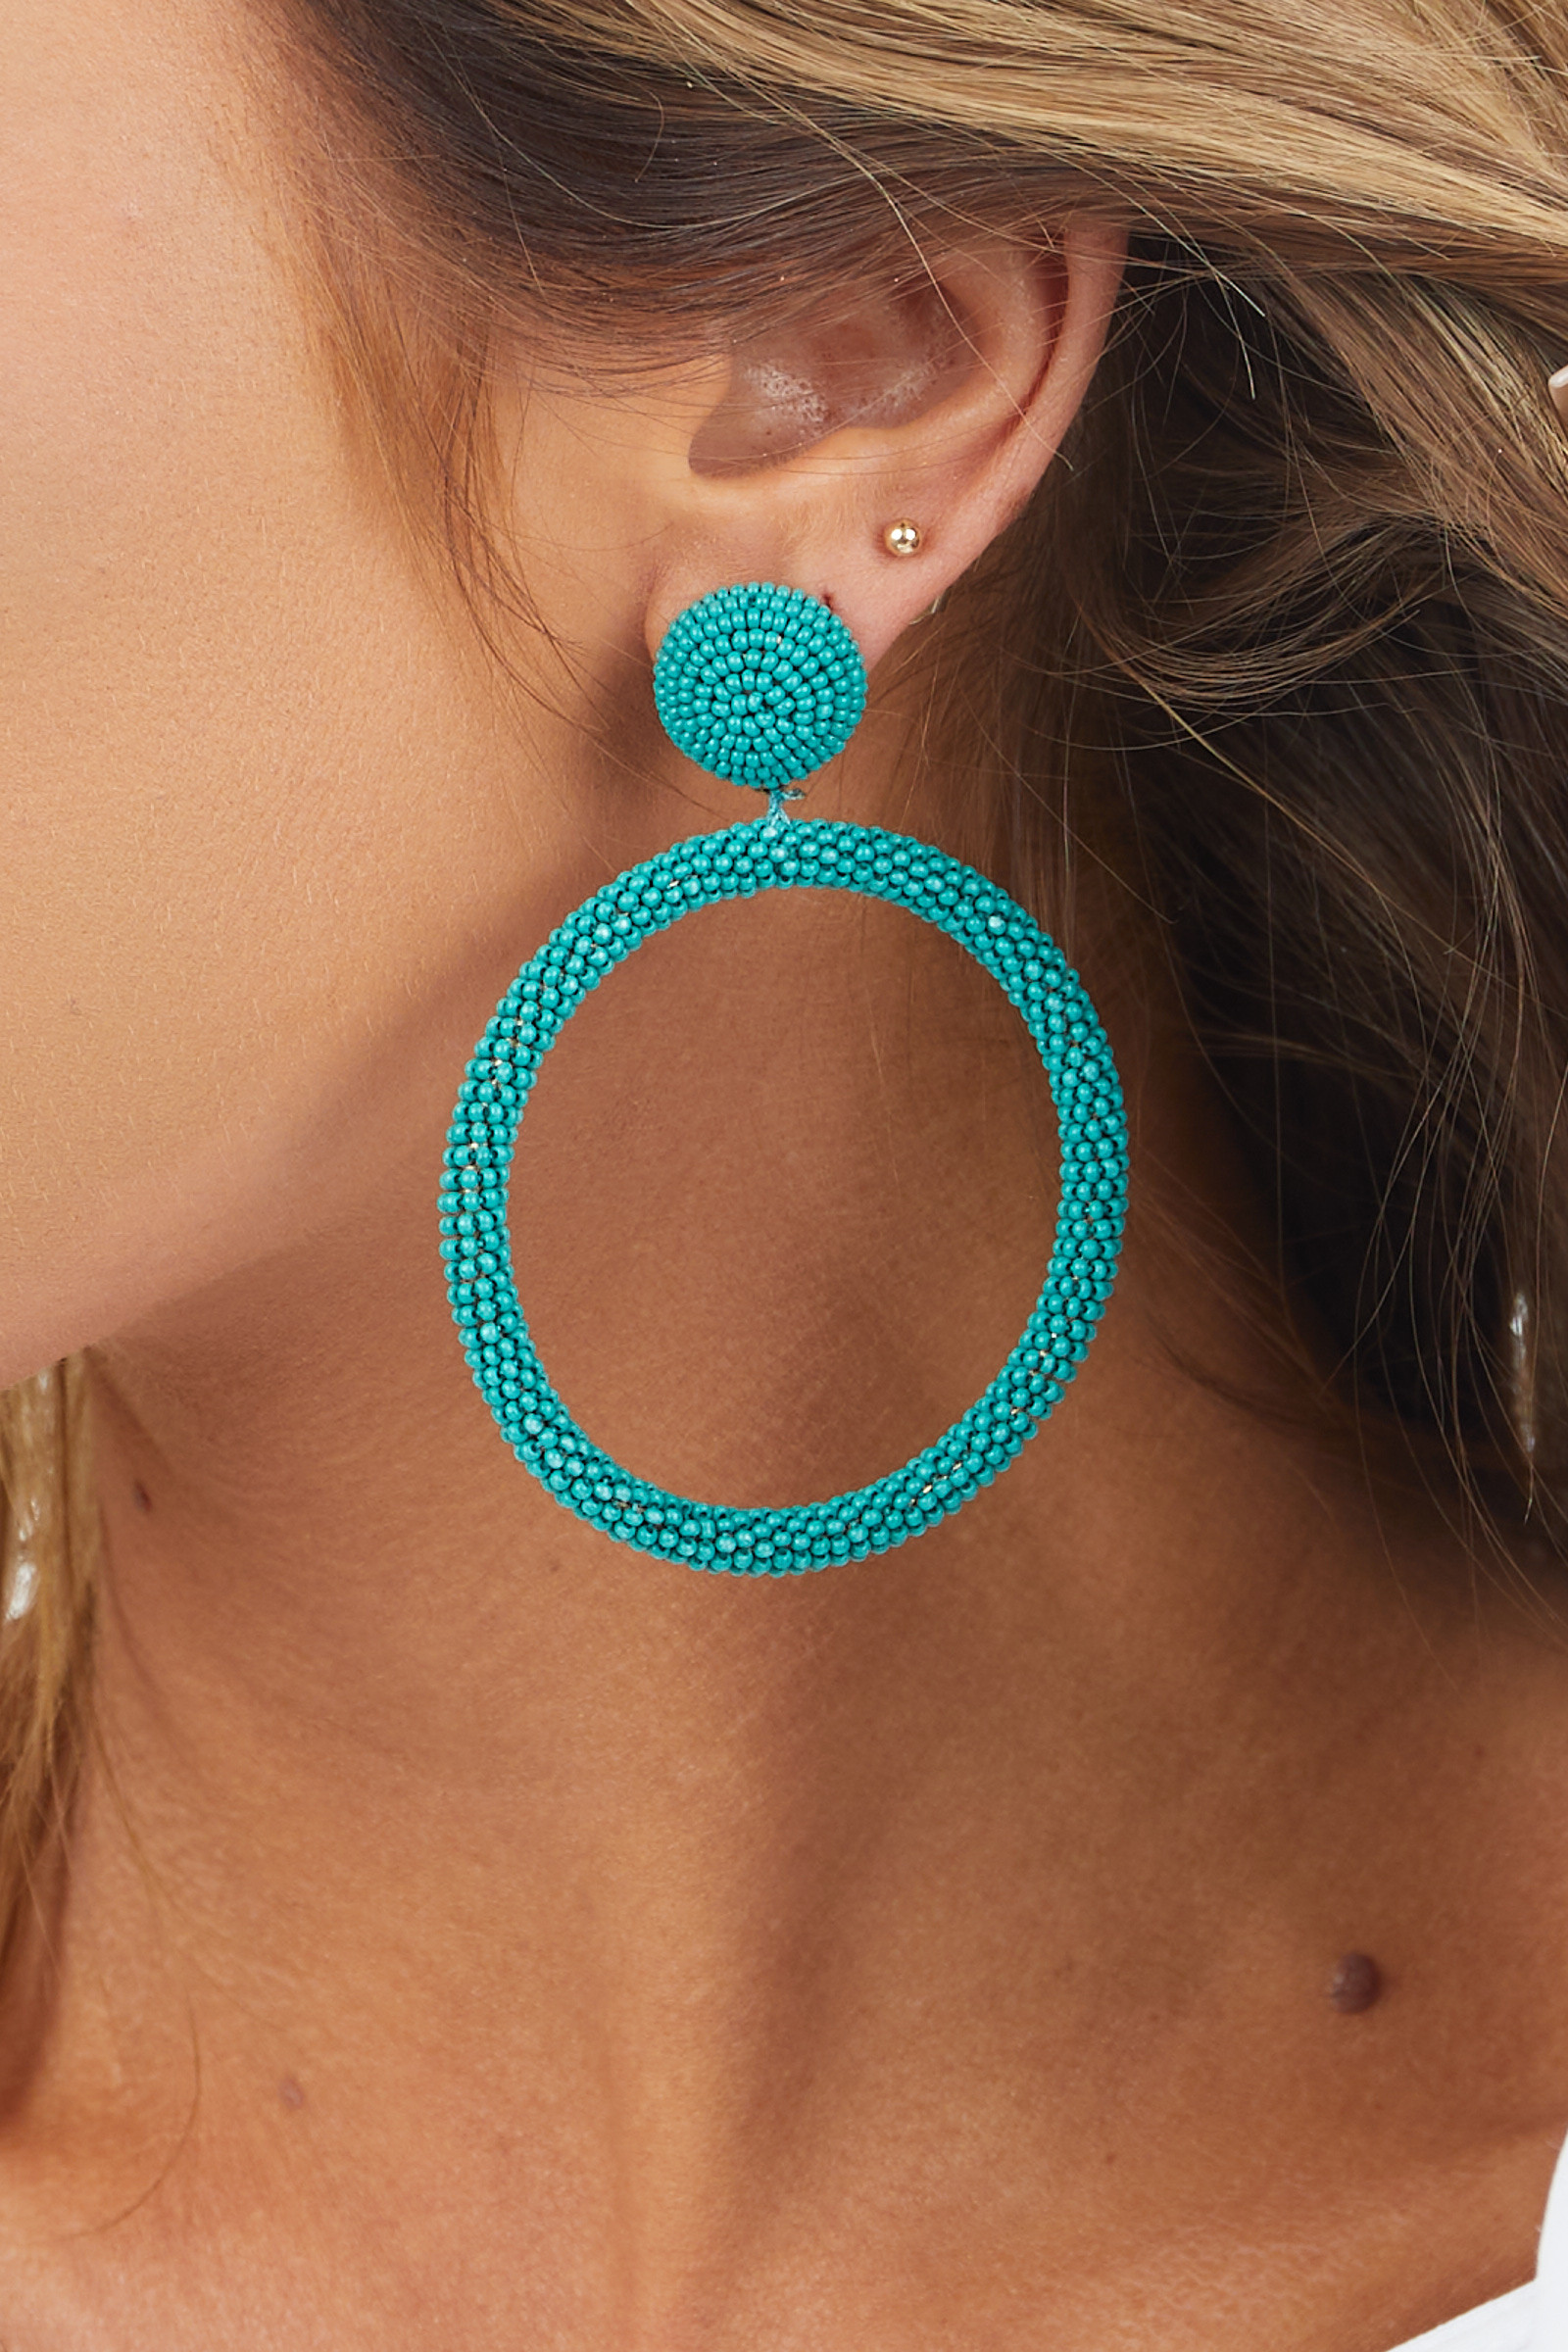 Teal Beaded Hoop Earrings with Stud Backs